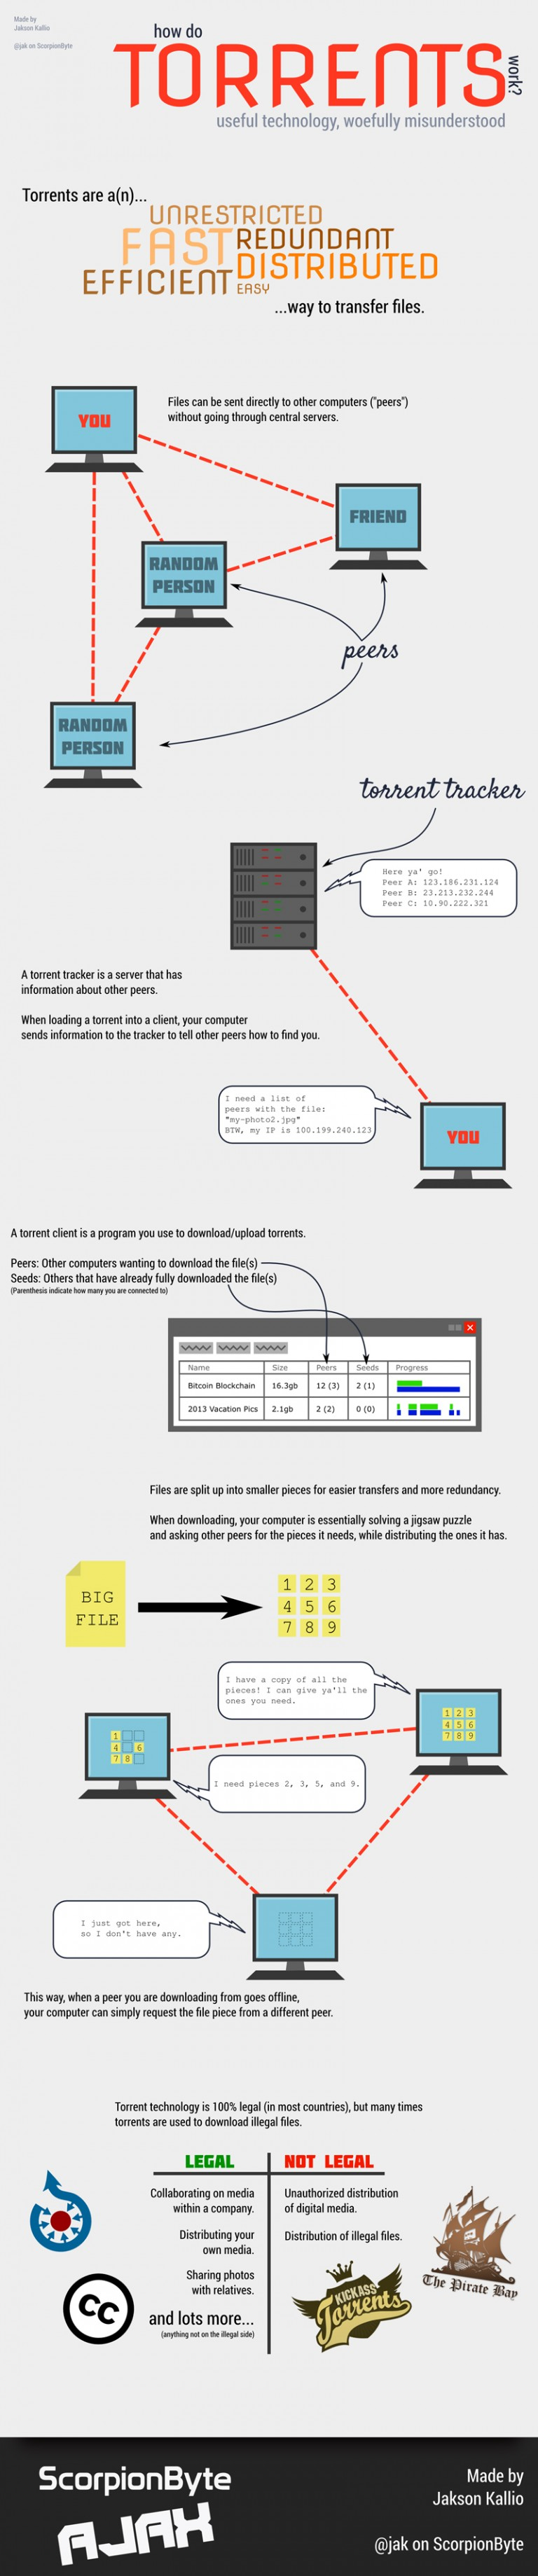 How Do Torrents Work - Infographic